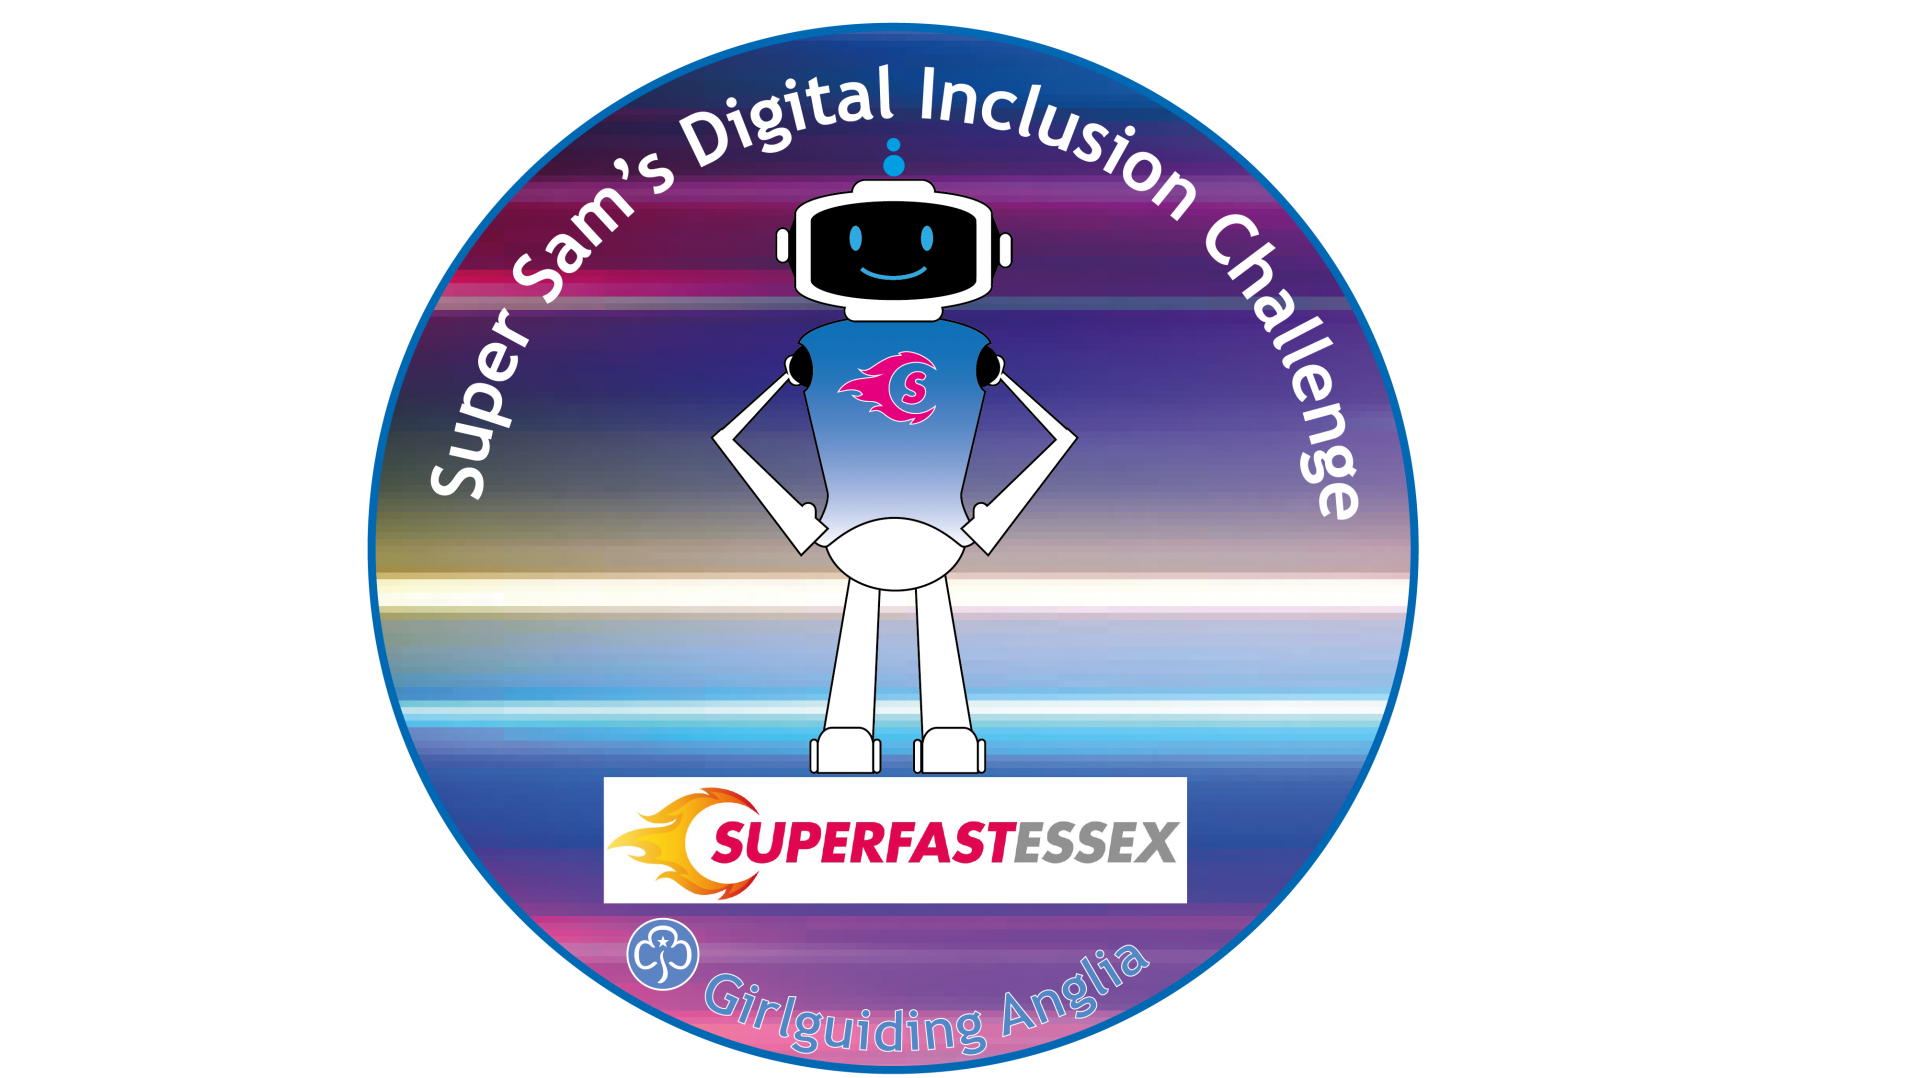 image relating to Super Sam's Digital Challenge